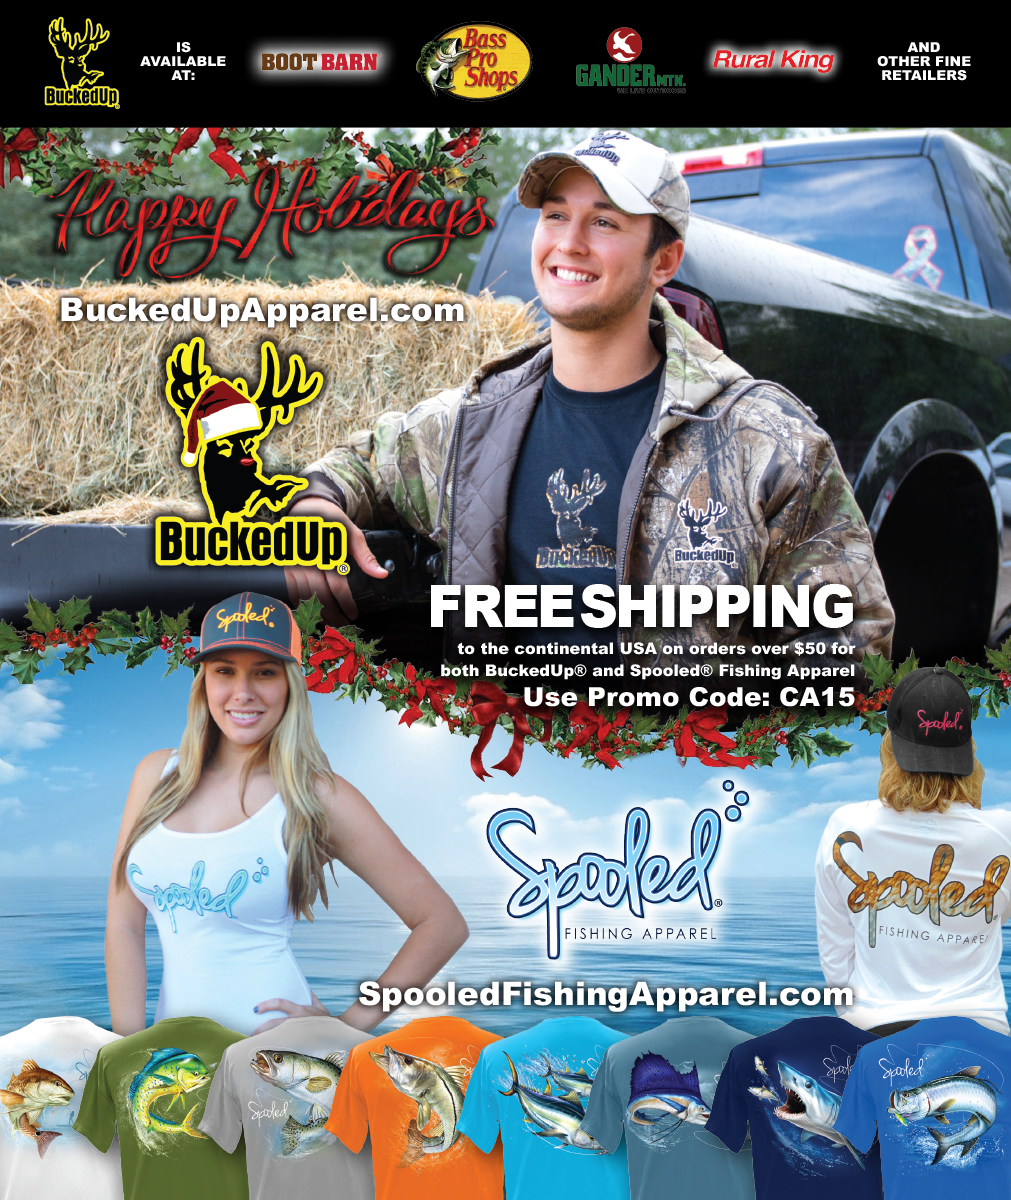 BuckedUp-Spooled-FULL-PAGE-Dec-6-ready-for-print